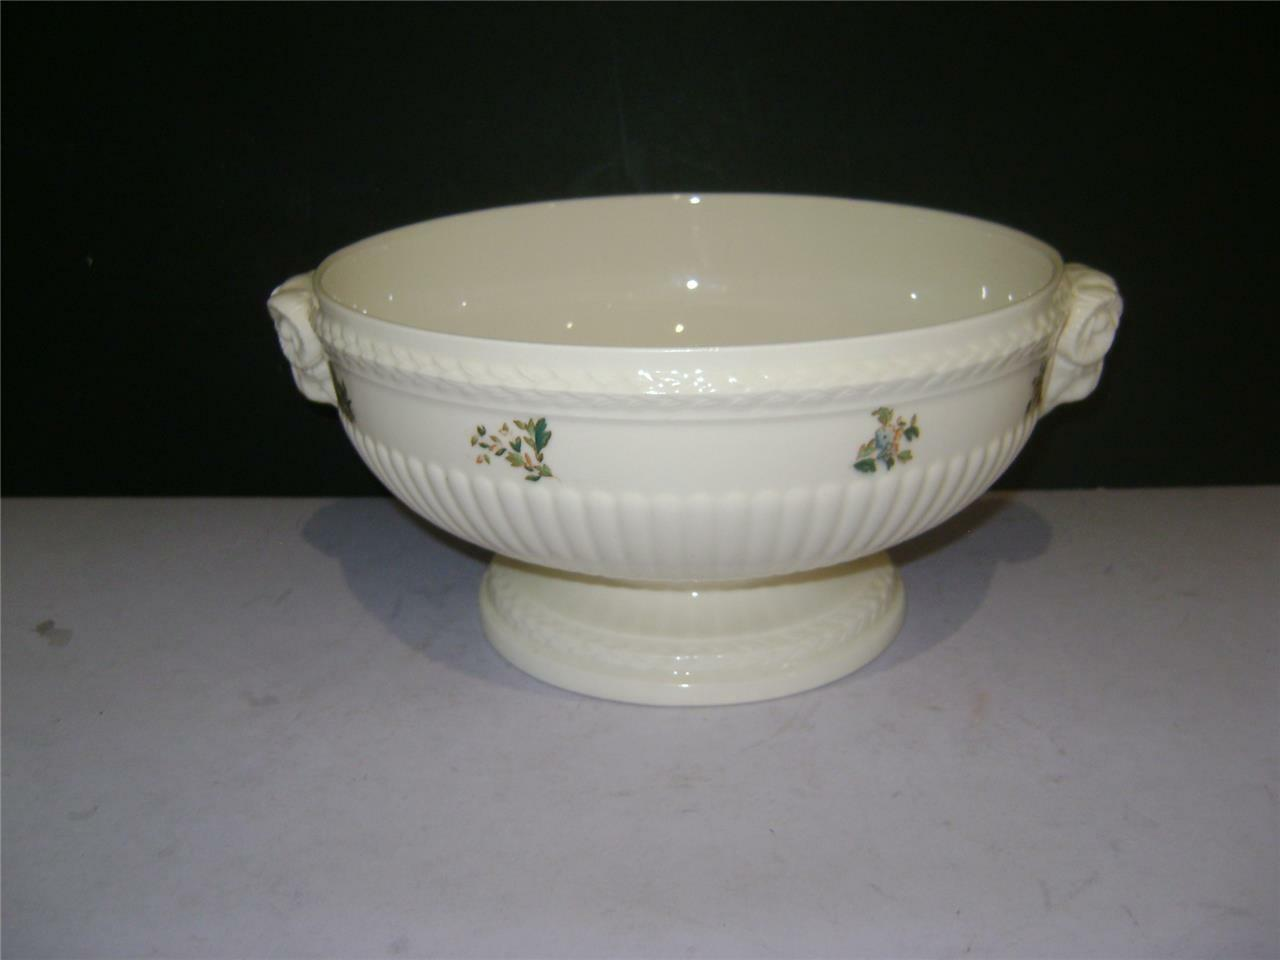 Stunning 10 Fruit Bowl In Conway Design By Wedgwood